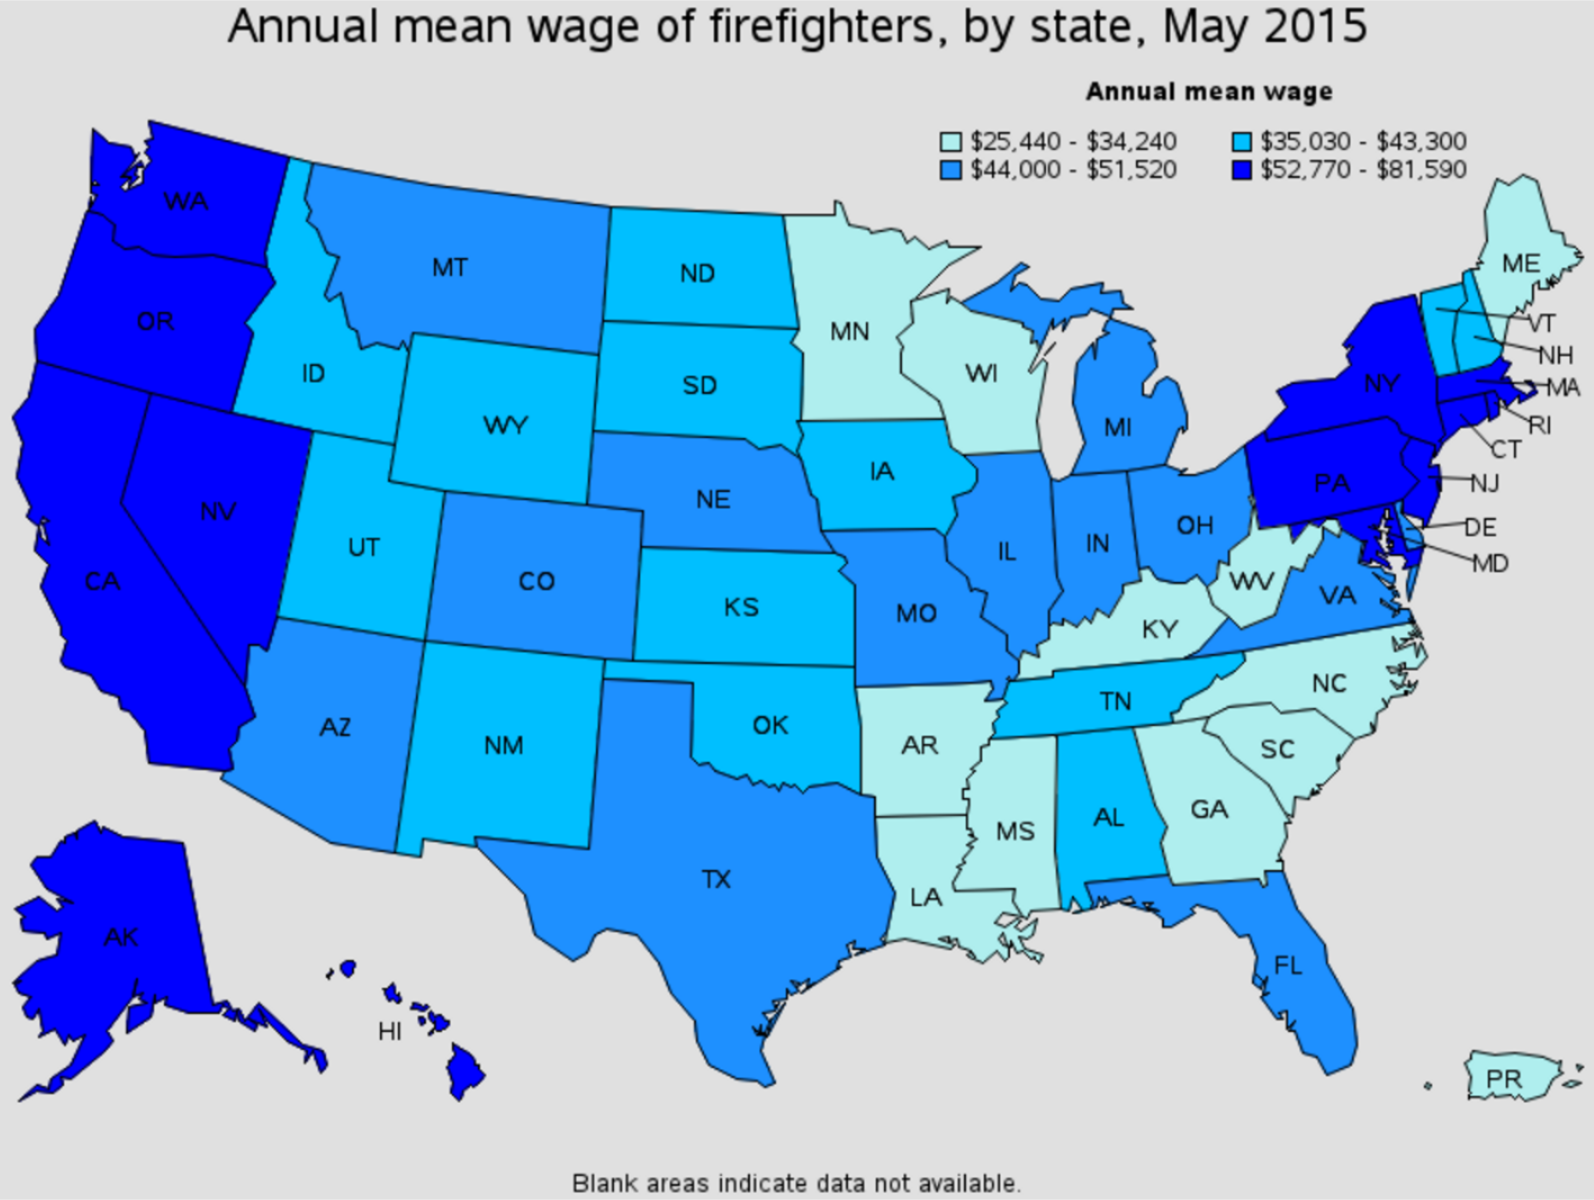 firefighter average salary by state Norfolk Virginia